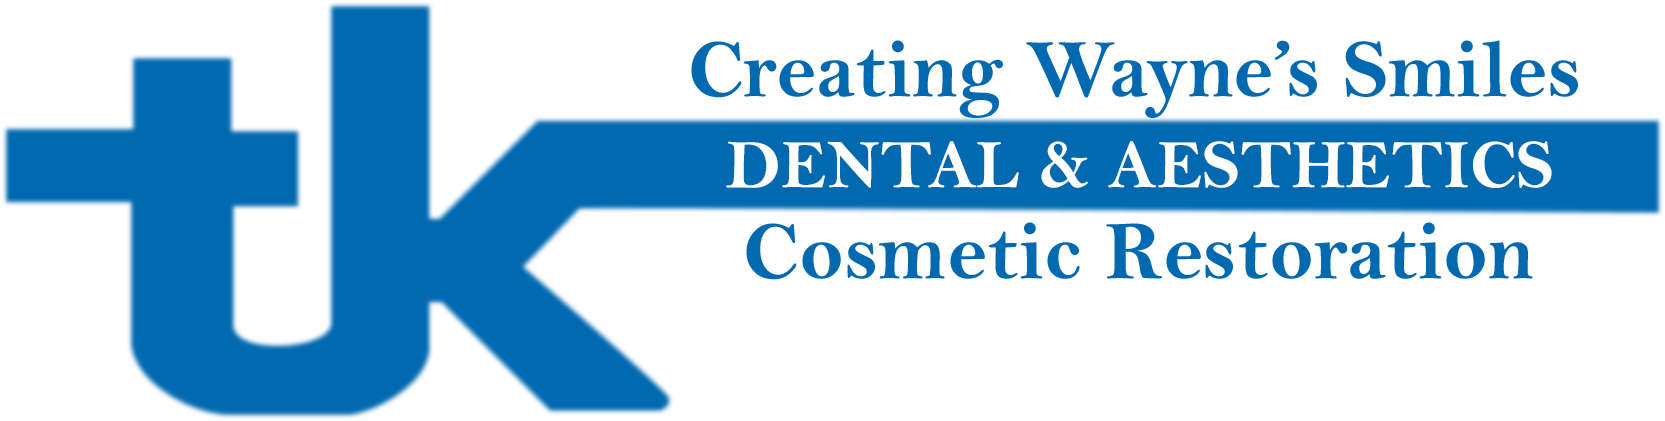 TK Dental Wayne, NJ General & Cosmetic Dentistry | Tatyana Kaminar DDS